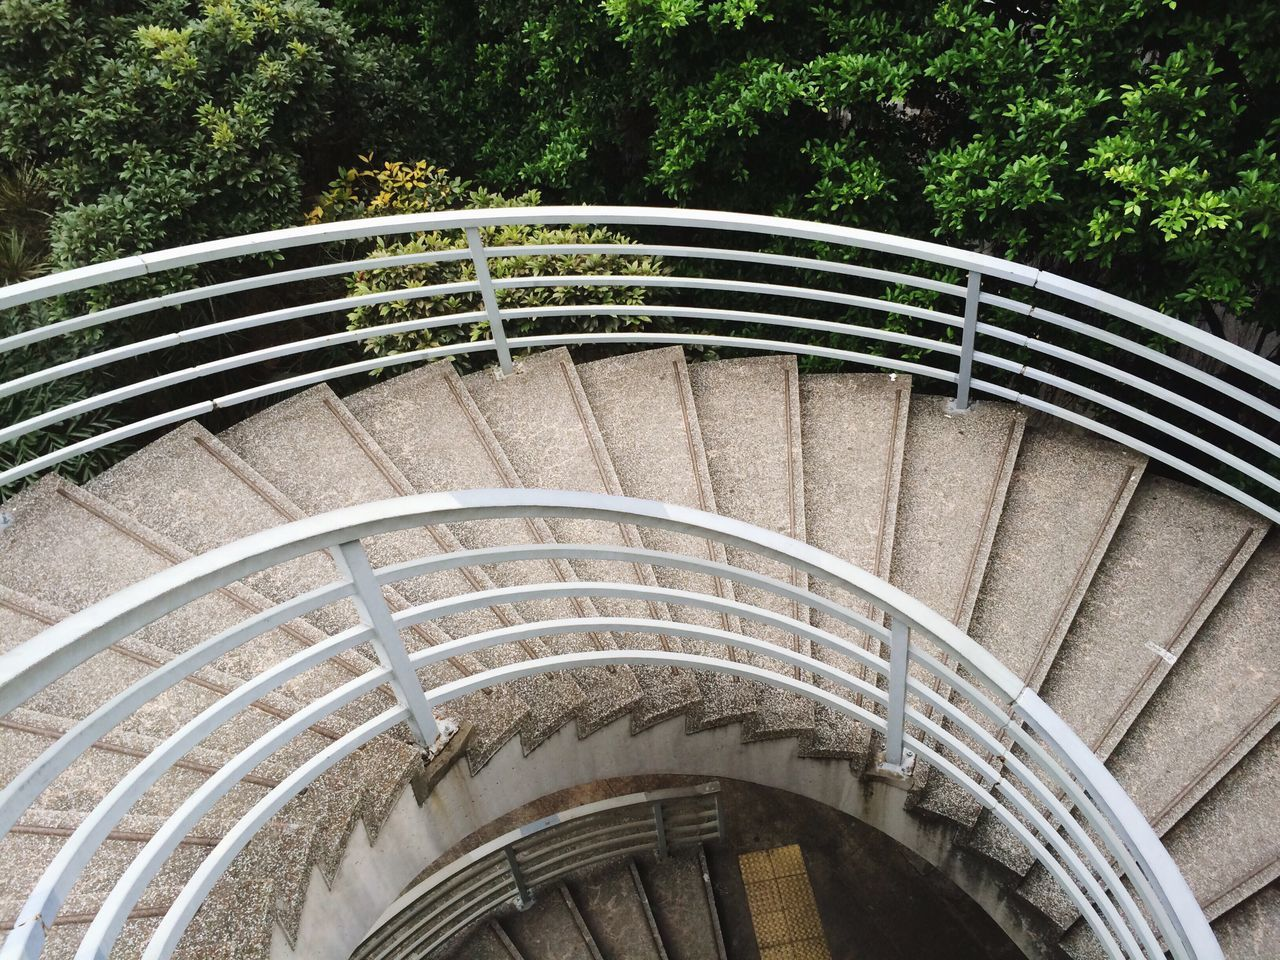 Architecture Built Structure No People Looking Down Looking Down From Above Stairs Turning Curve Walking Around Taking Pictures Walking Around The City  Day Outdoors